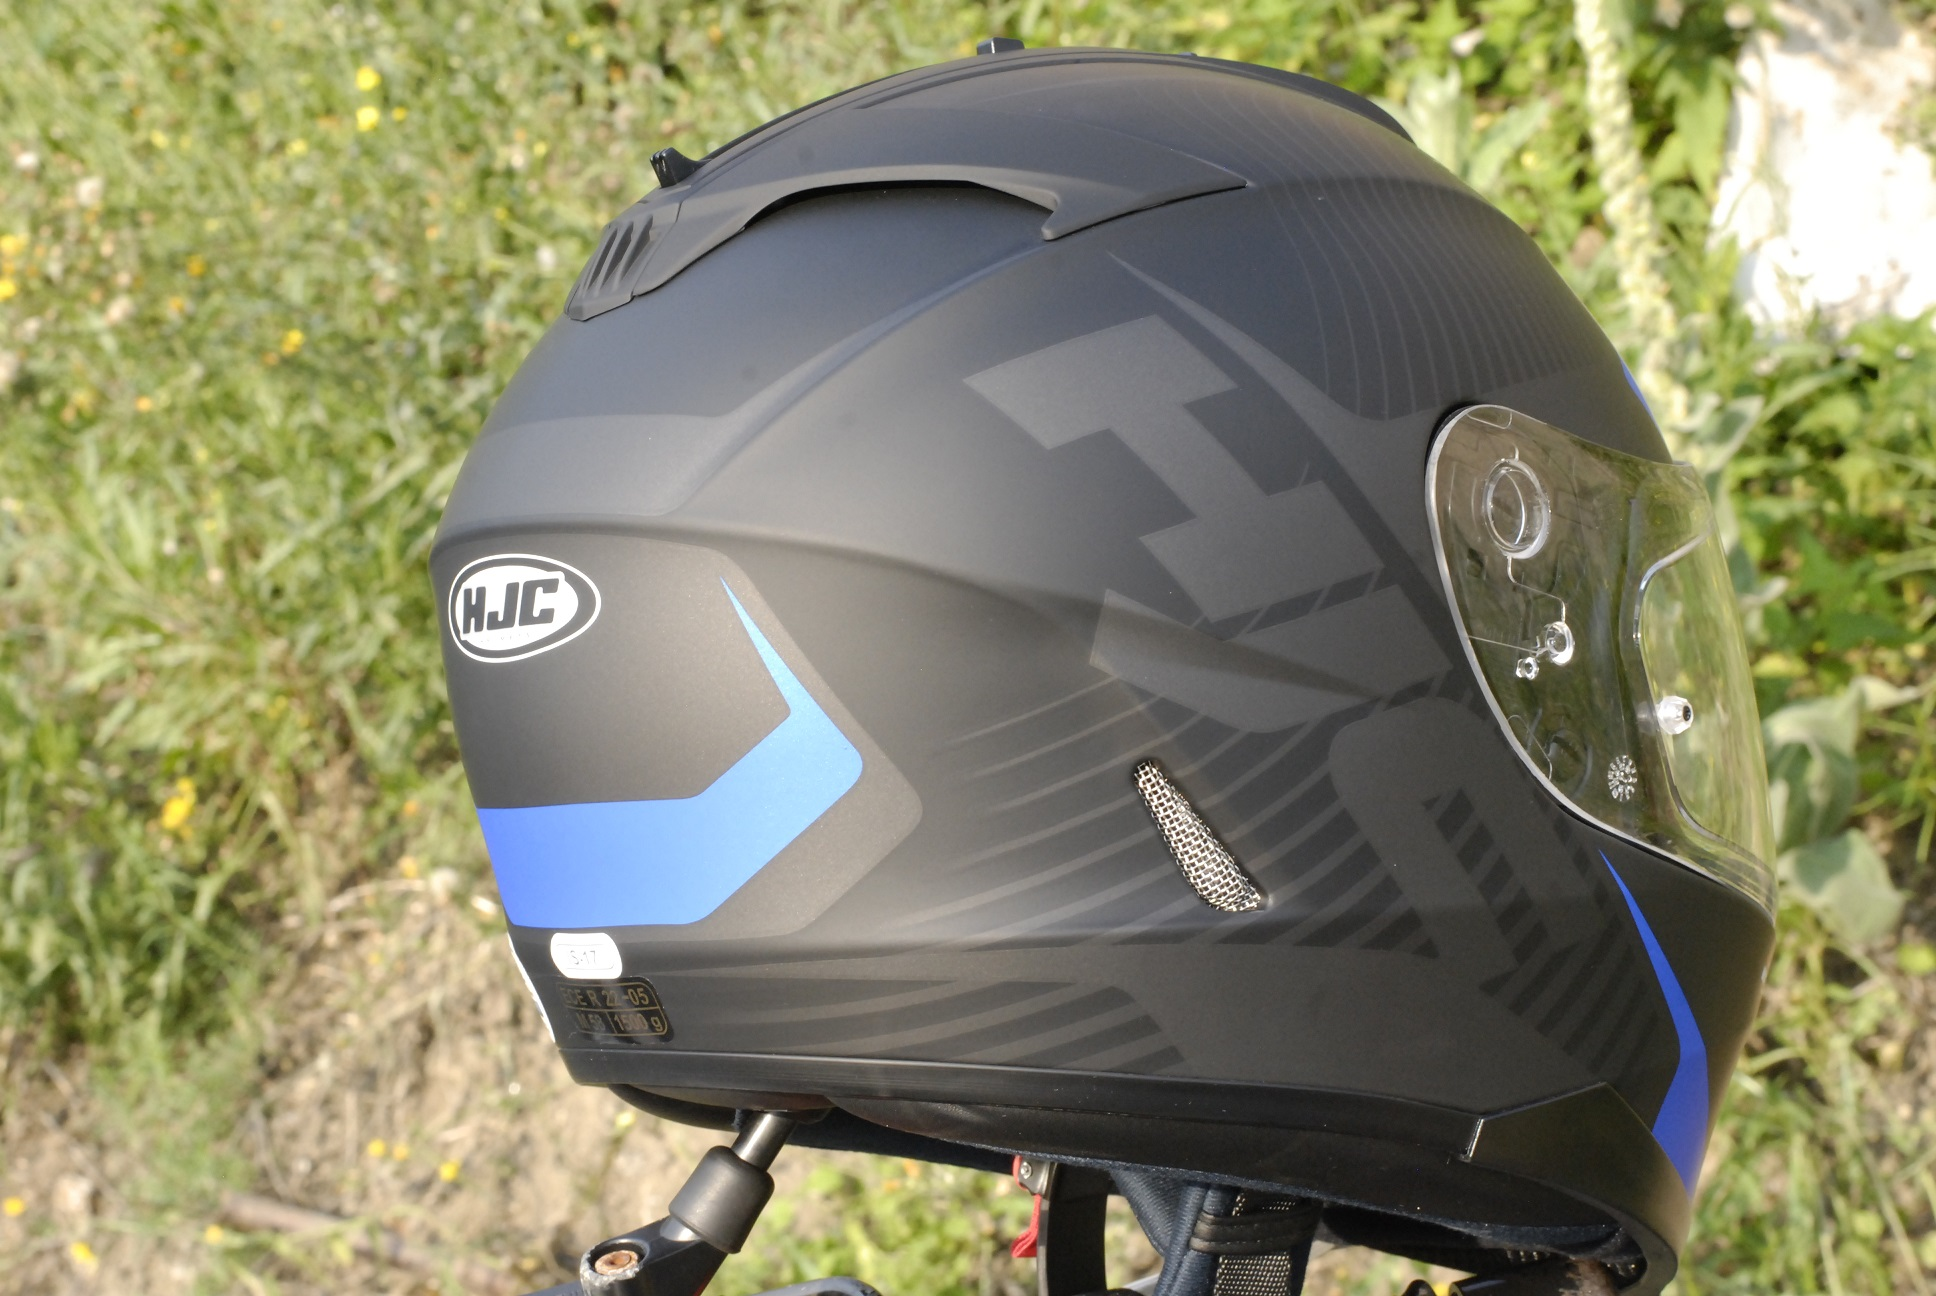 casco-moto-hjc-is-17-parte-posterior